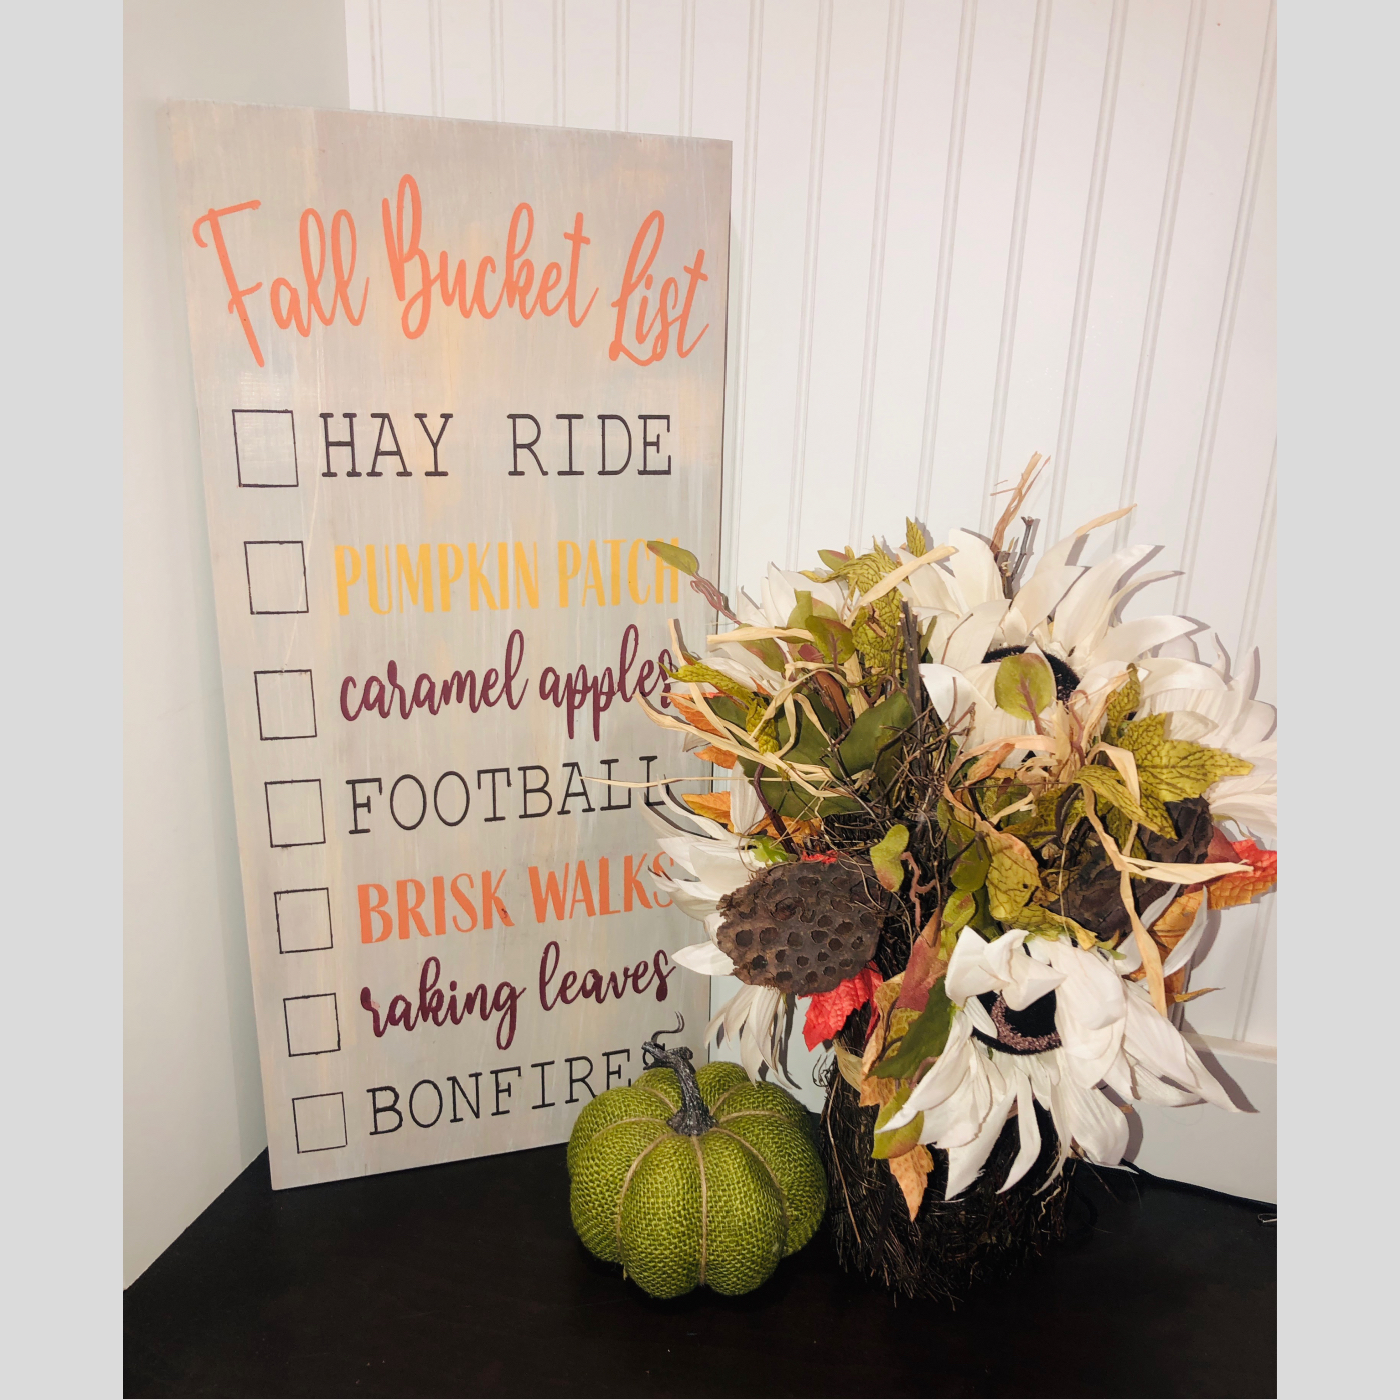 Fall Bucket List DIY Wood Sign Bethlehem PA